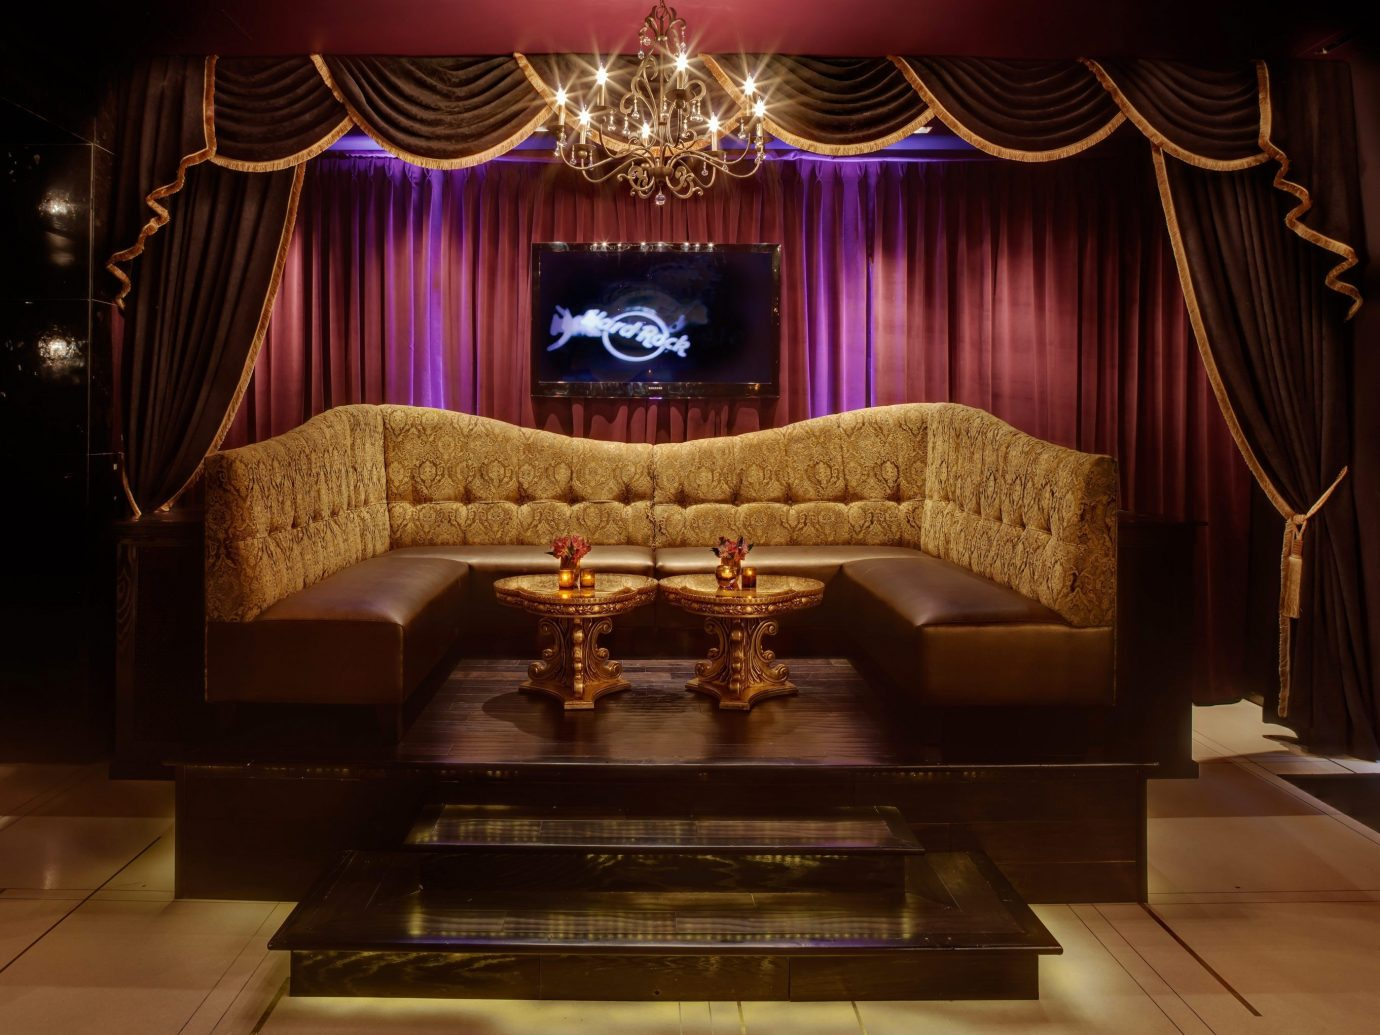 Hotels indoor stage interior design theatre Lobby curtain decorated